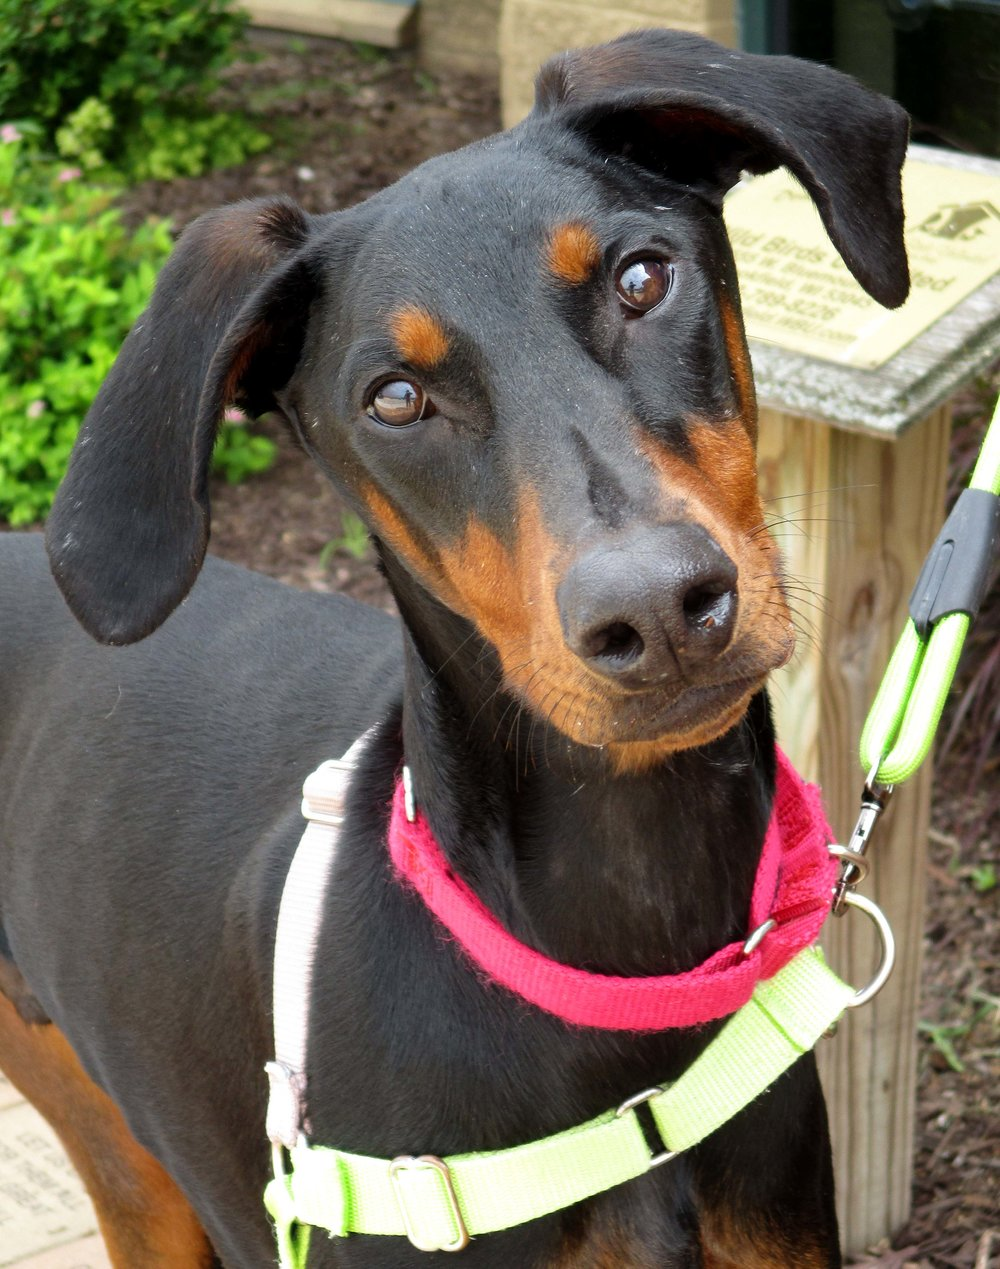 Ruger is is a 1 year old Doberman Pinscher. He has a fun and energetic personality! He will alert bark, so his future home cannot be an apartment or condominium.  Once you earn his trust, you will have a best bud for life.